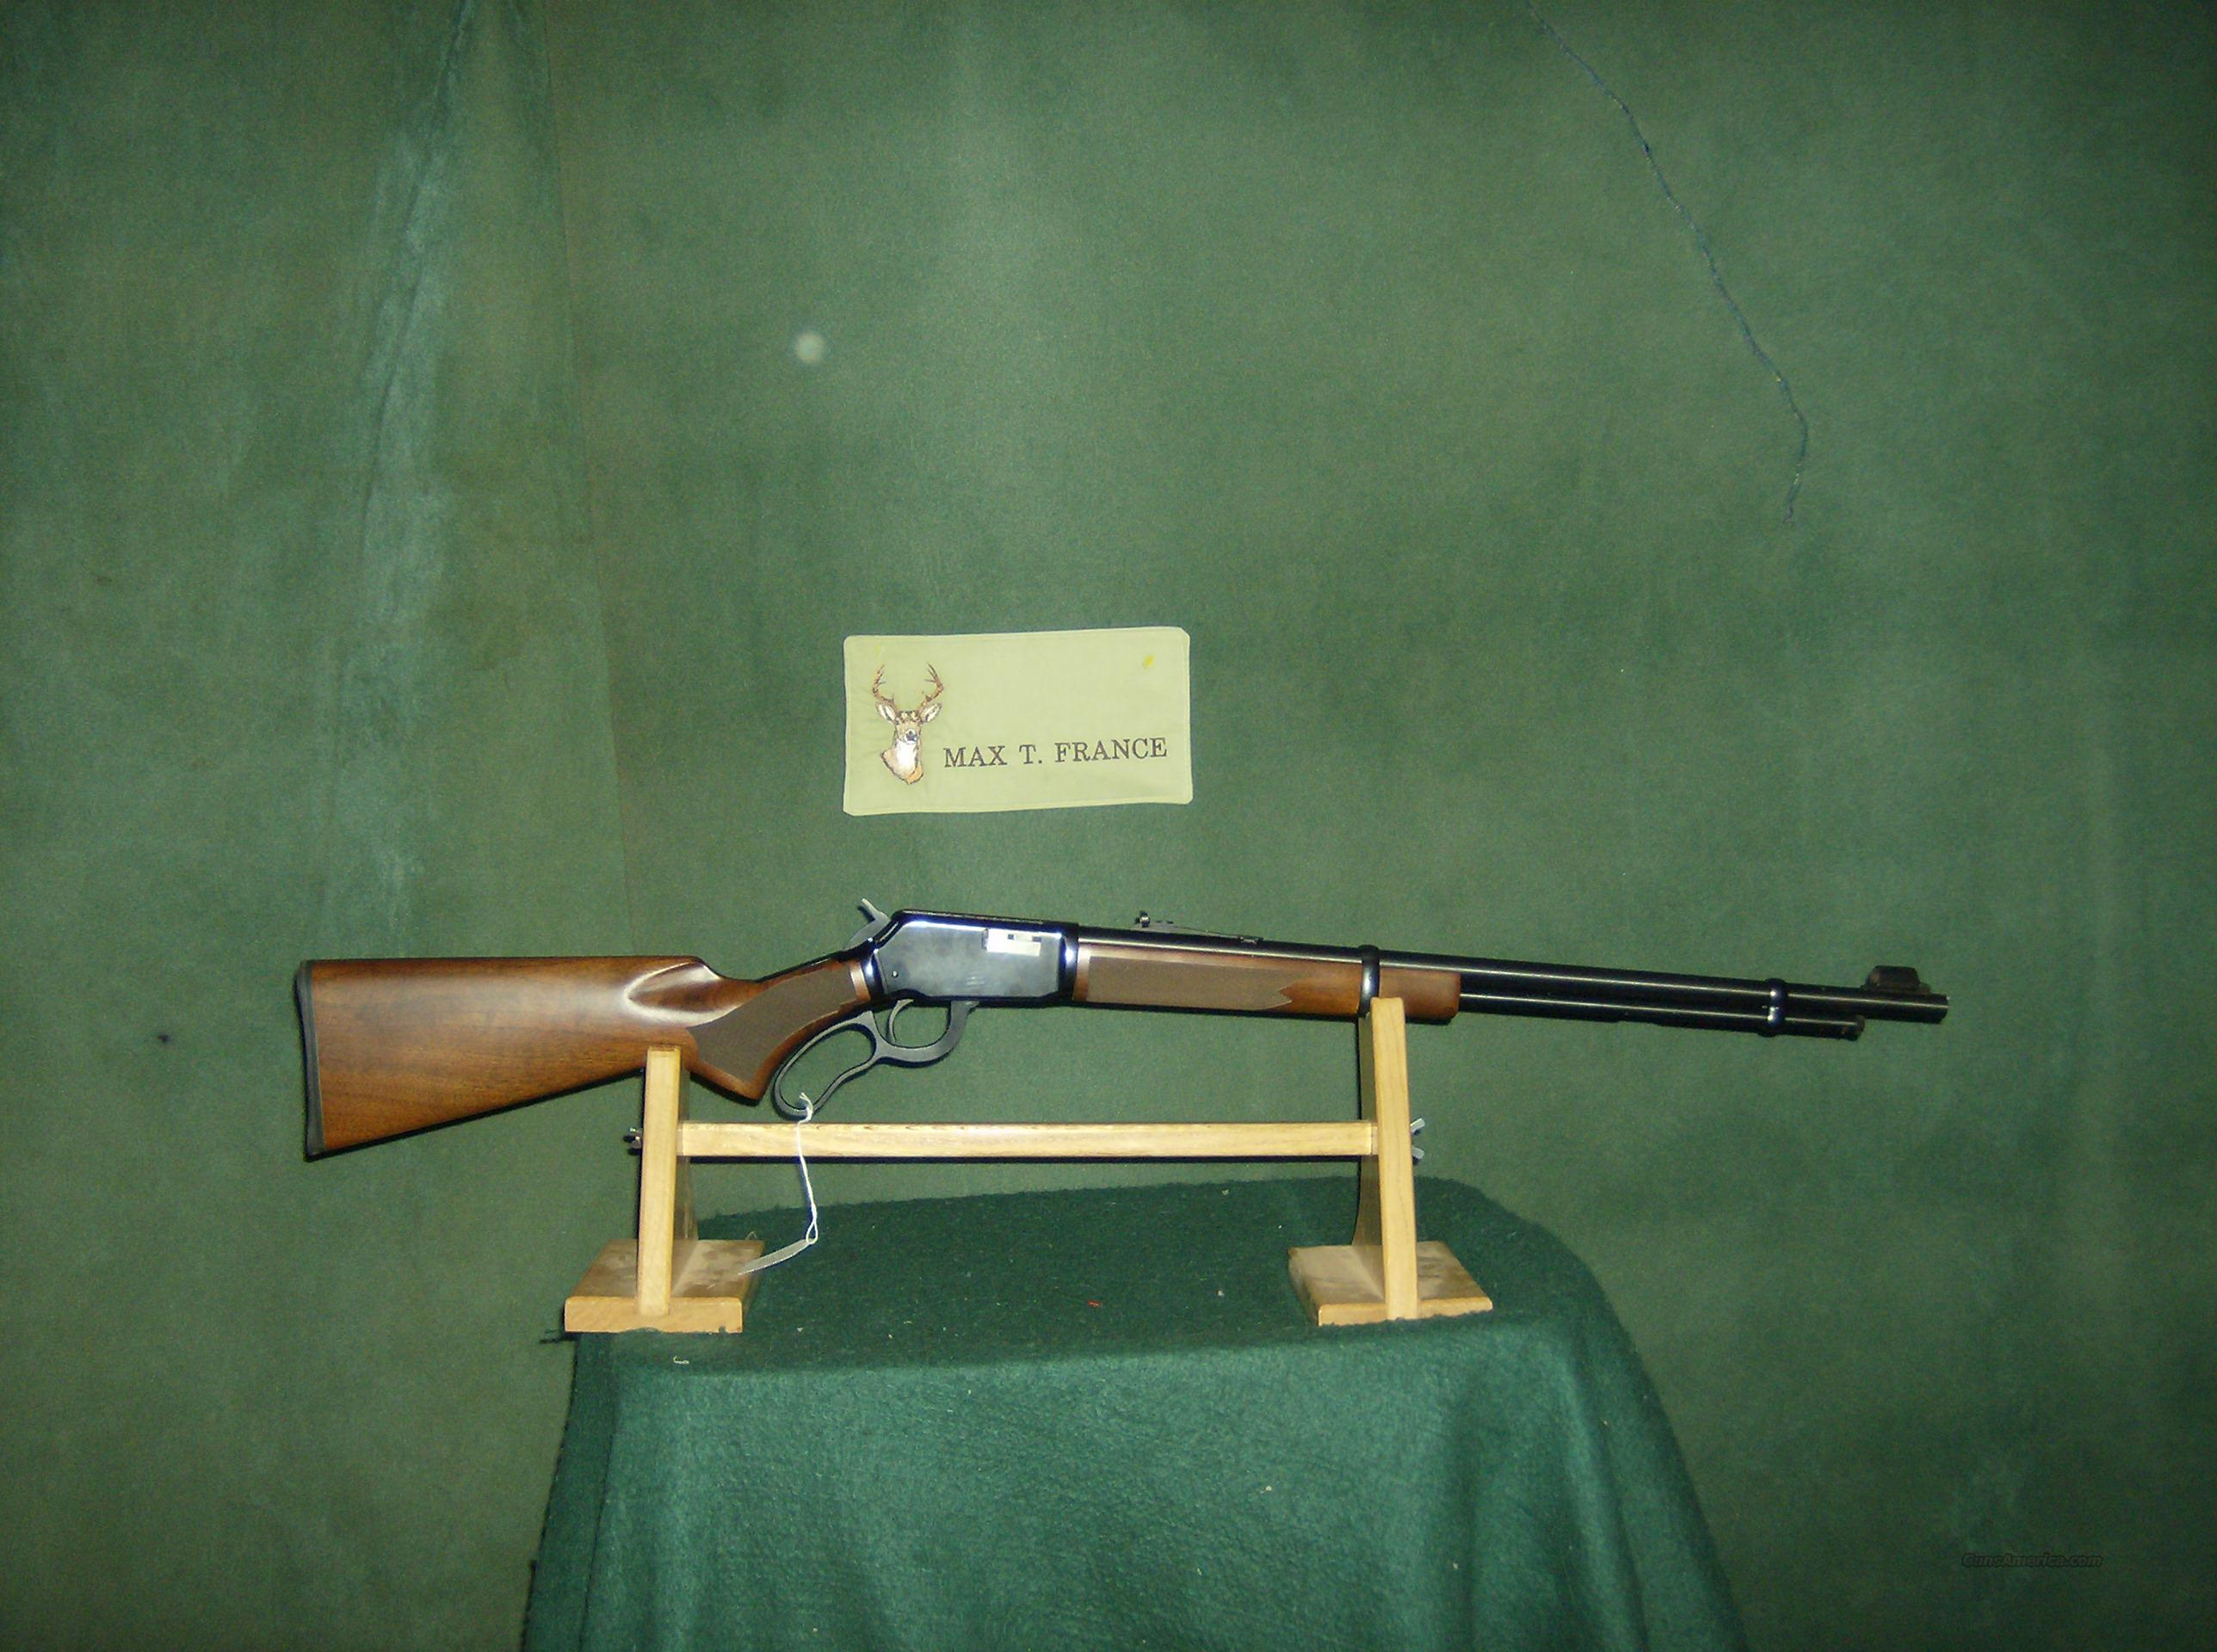 WINCHESTER 9422 LEGACY  Guns > Rifles > Winchester Rifles - Modern Lever > Other Lever > Post-64